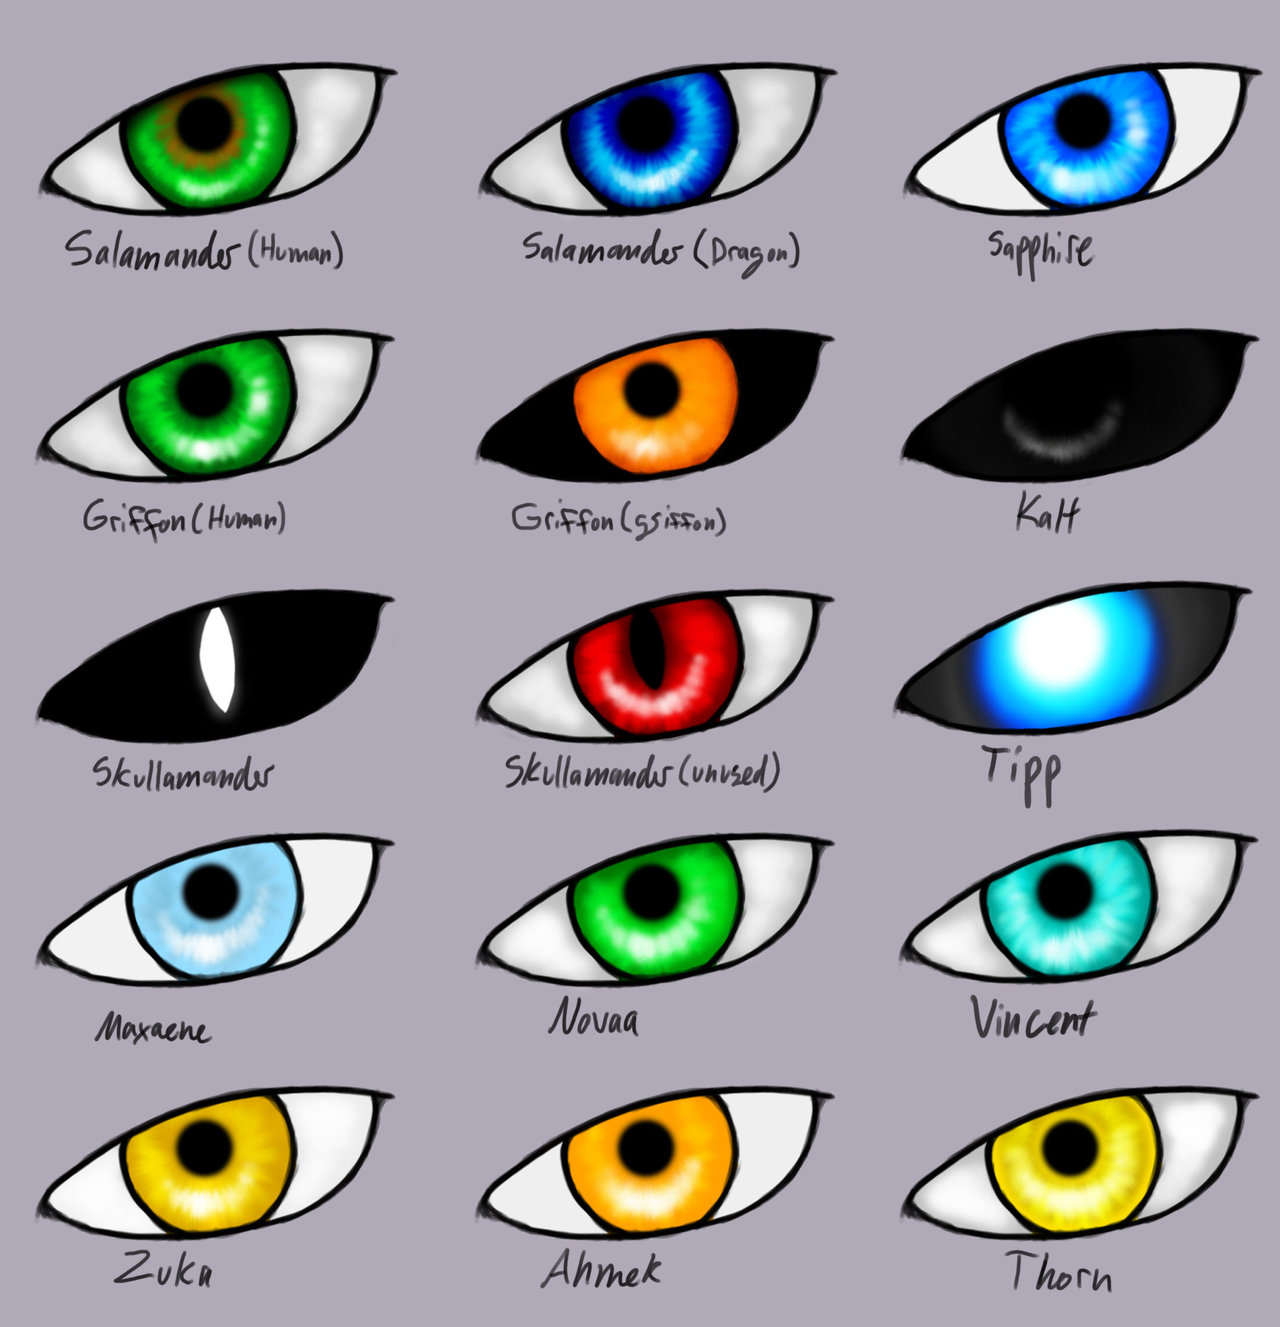 Eye color chart 2014 — Weasyl